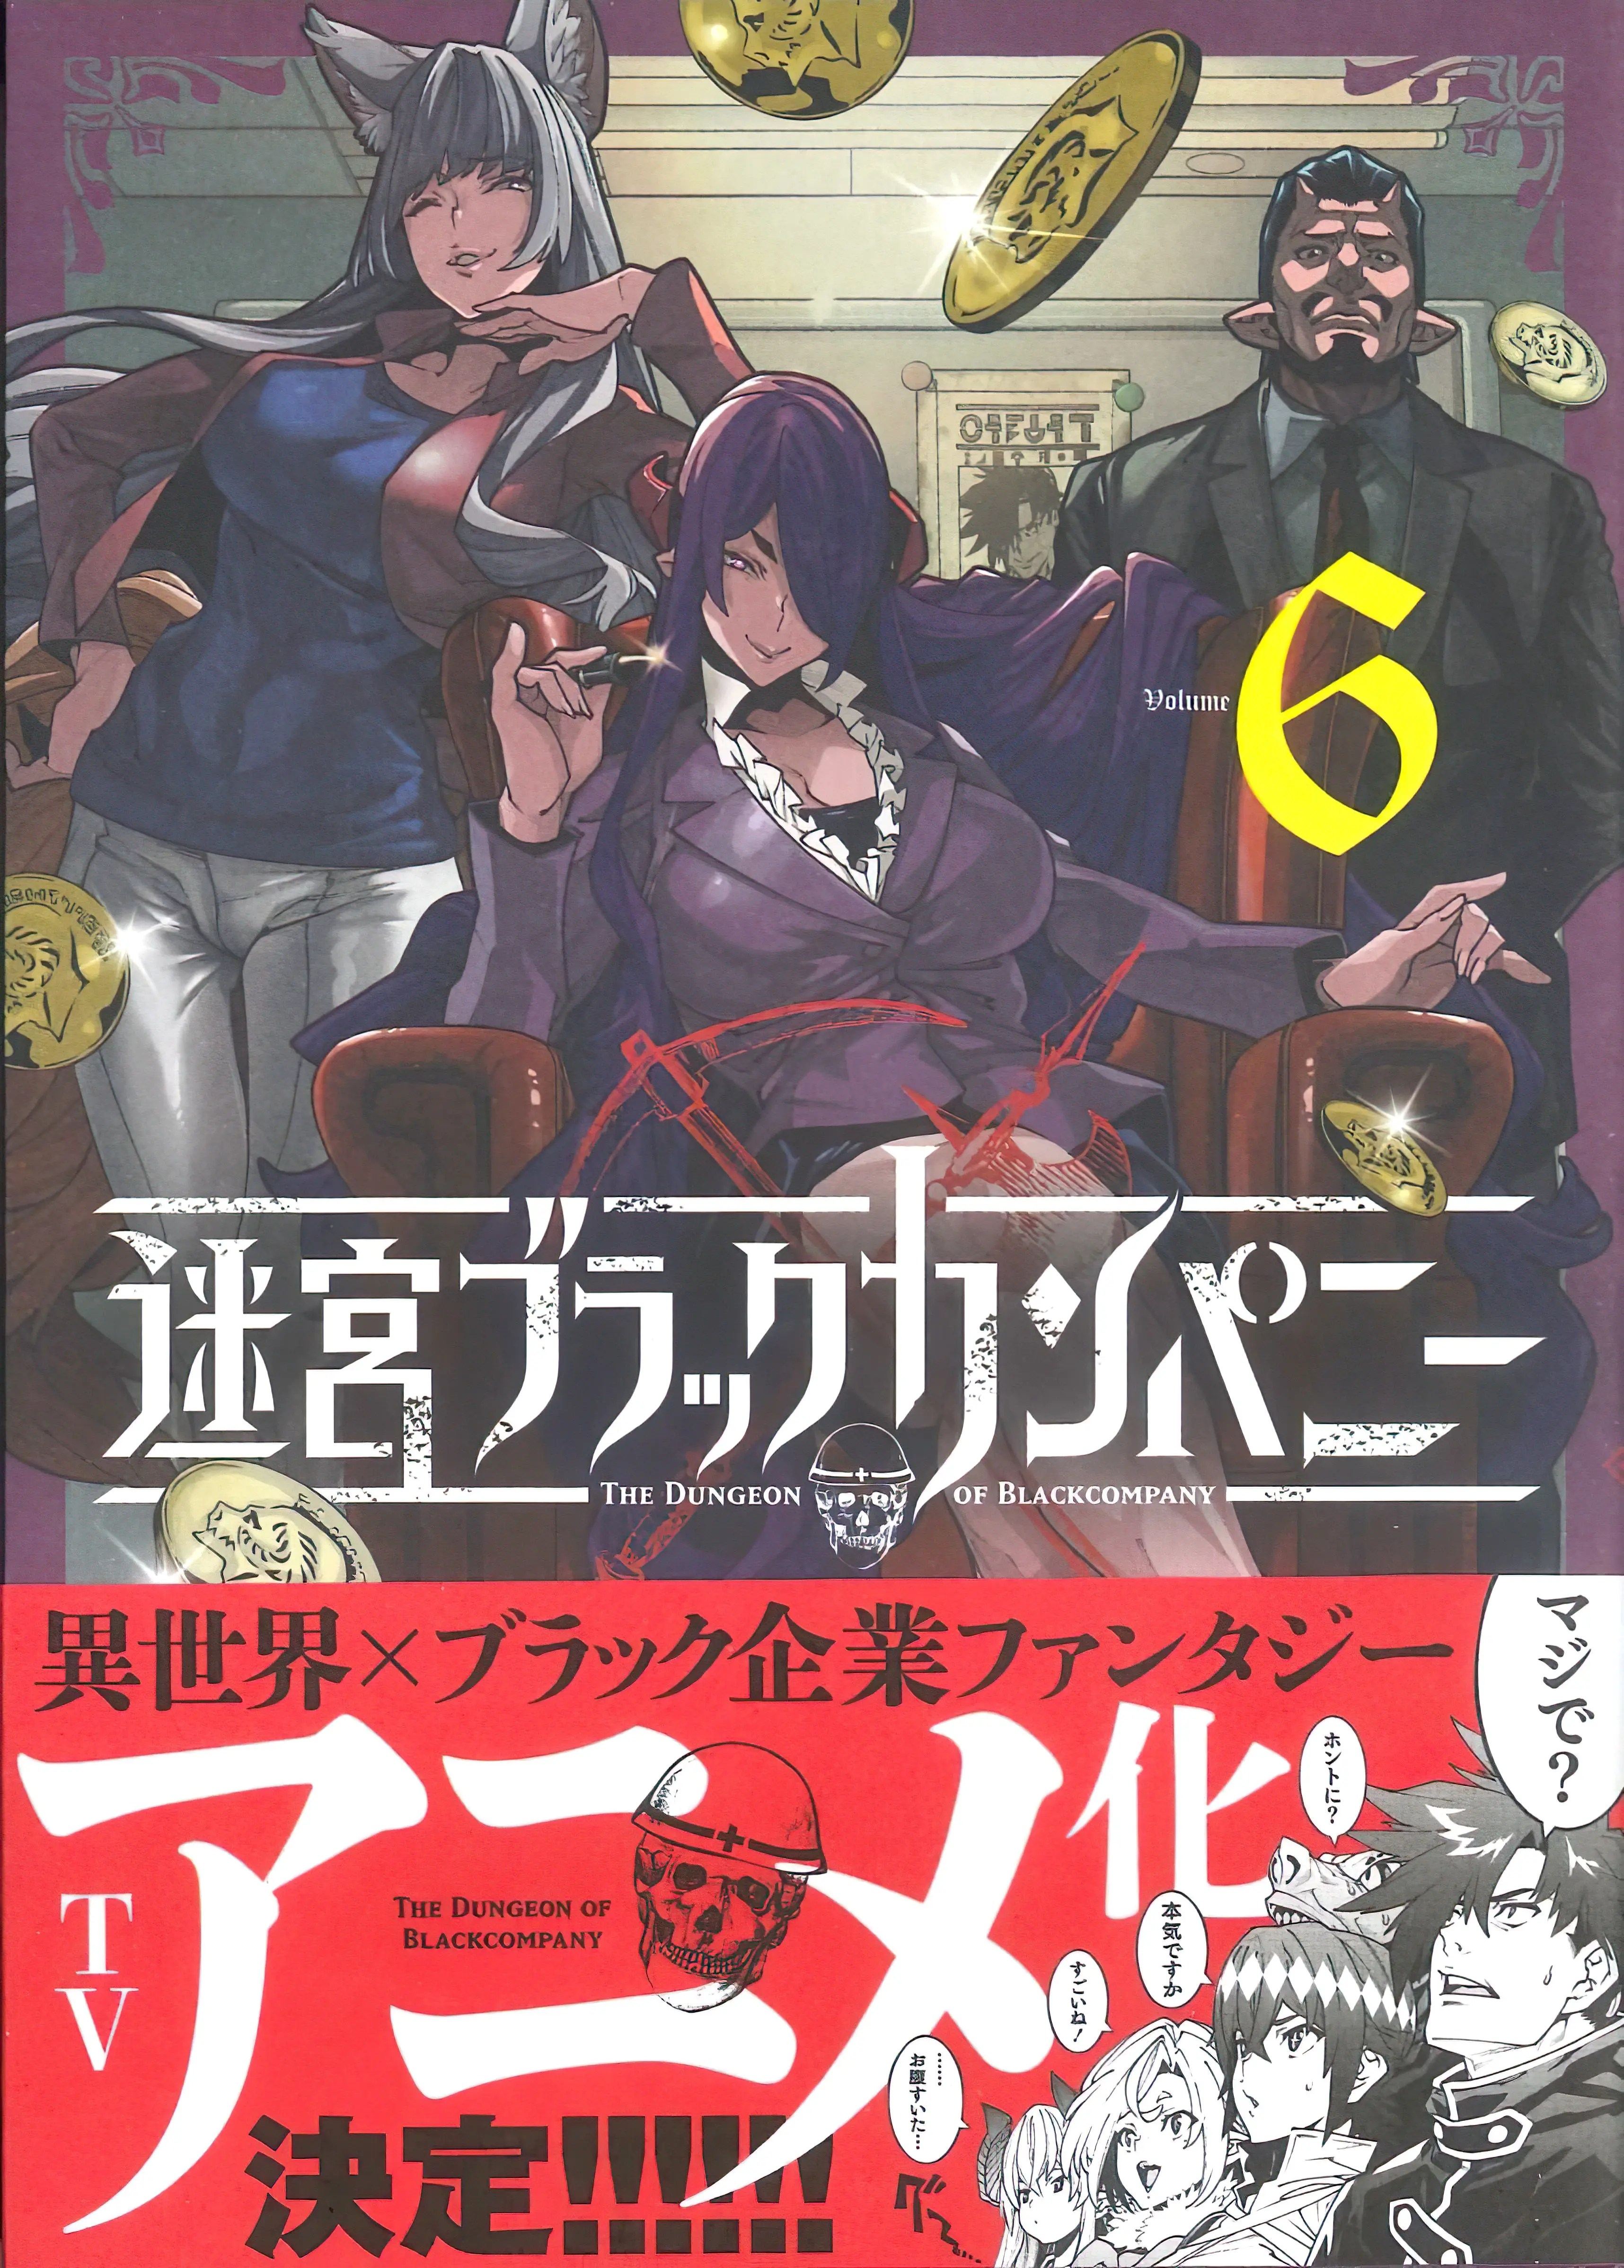 Annonce d'une adaptation en anime pour le manga The Dungeon of Black Company